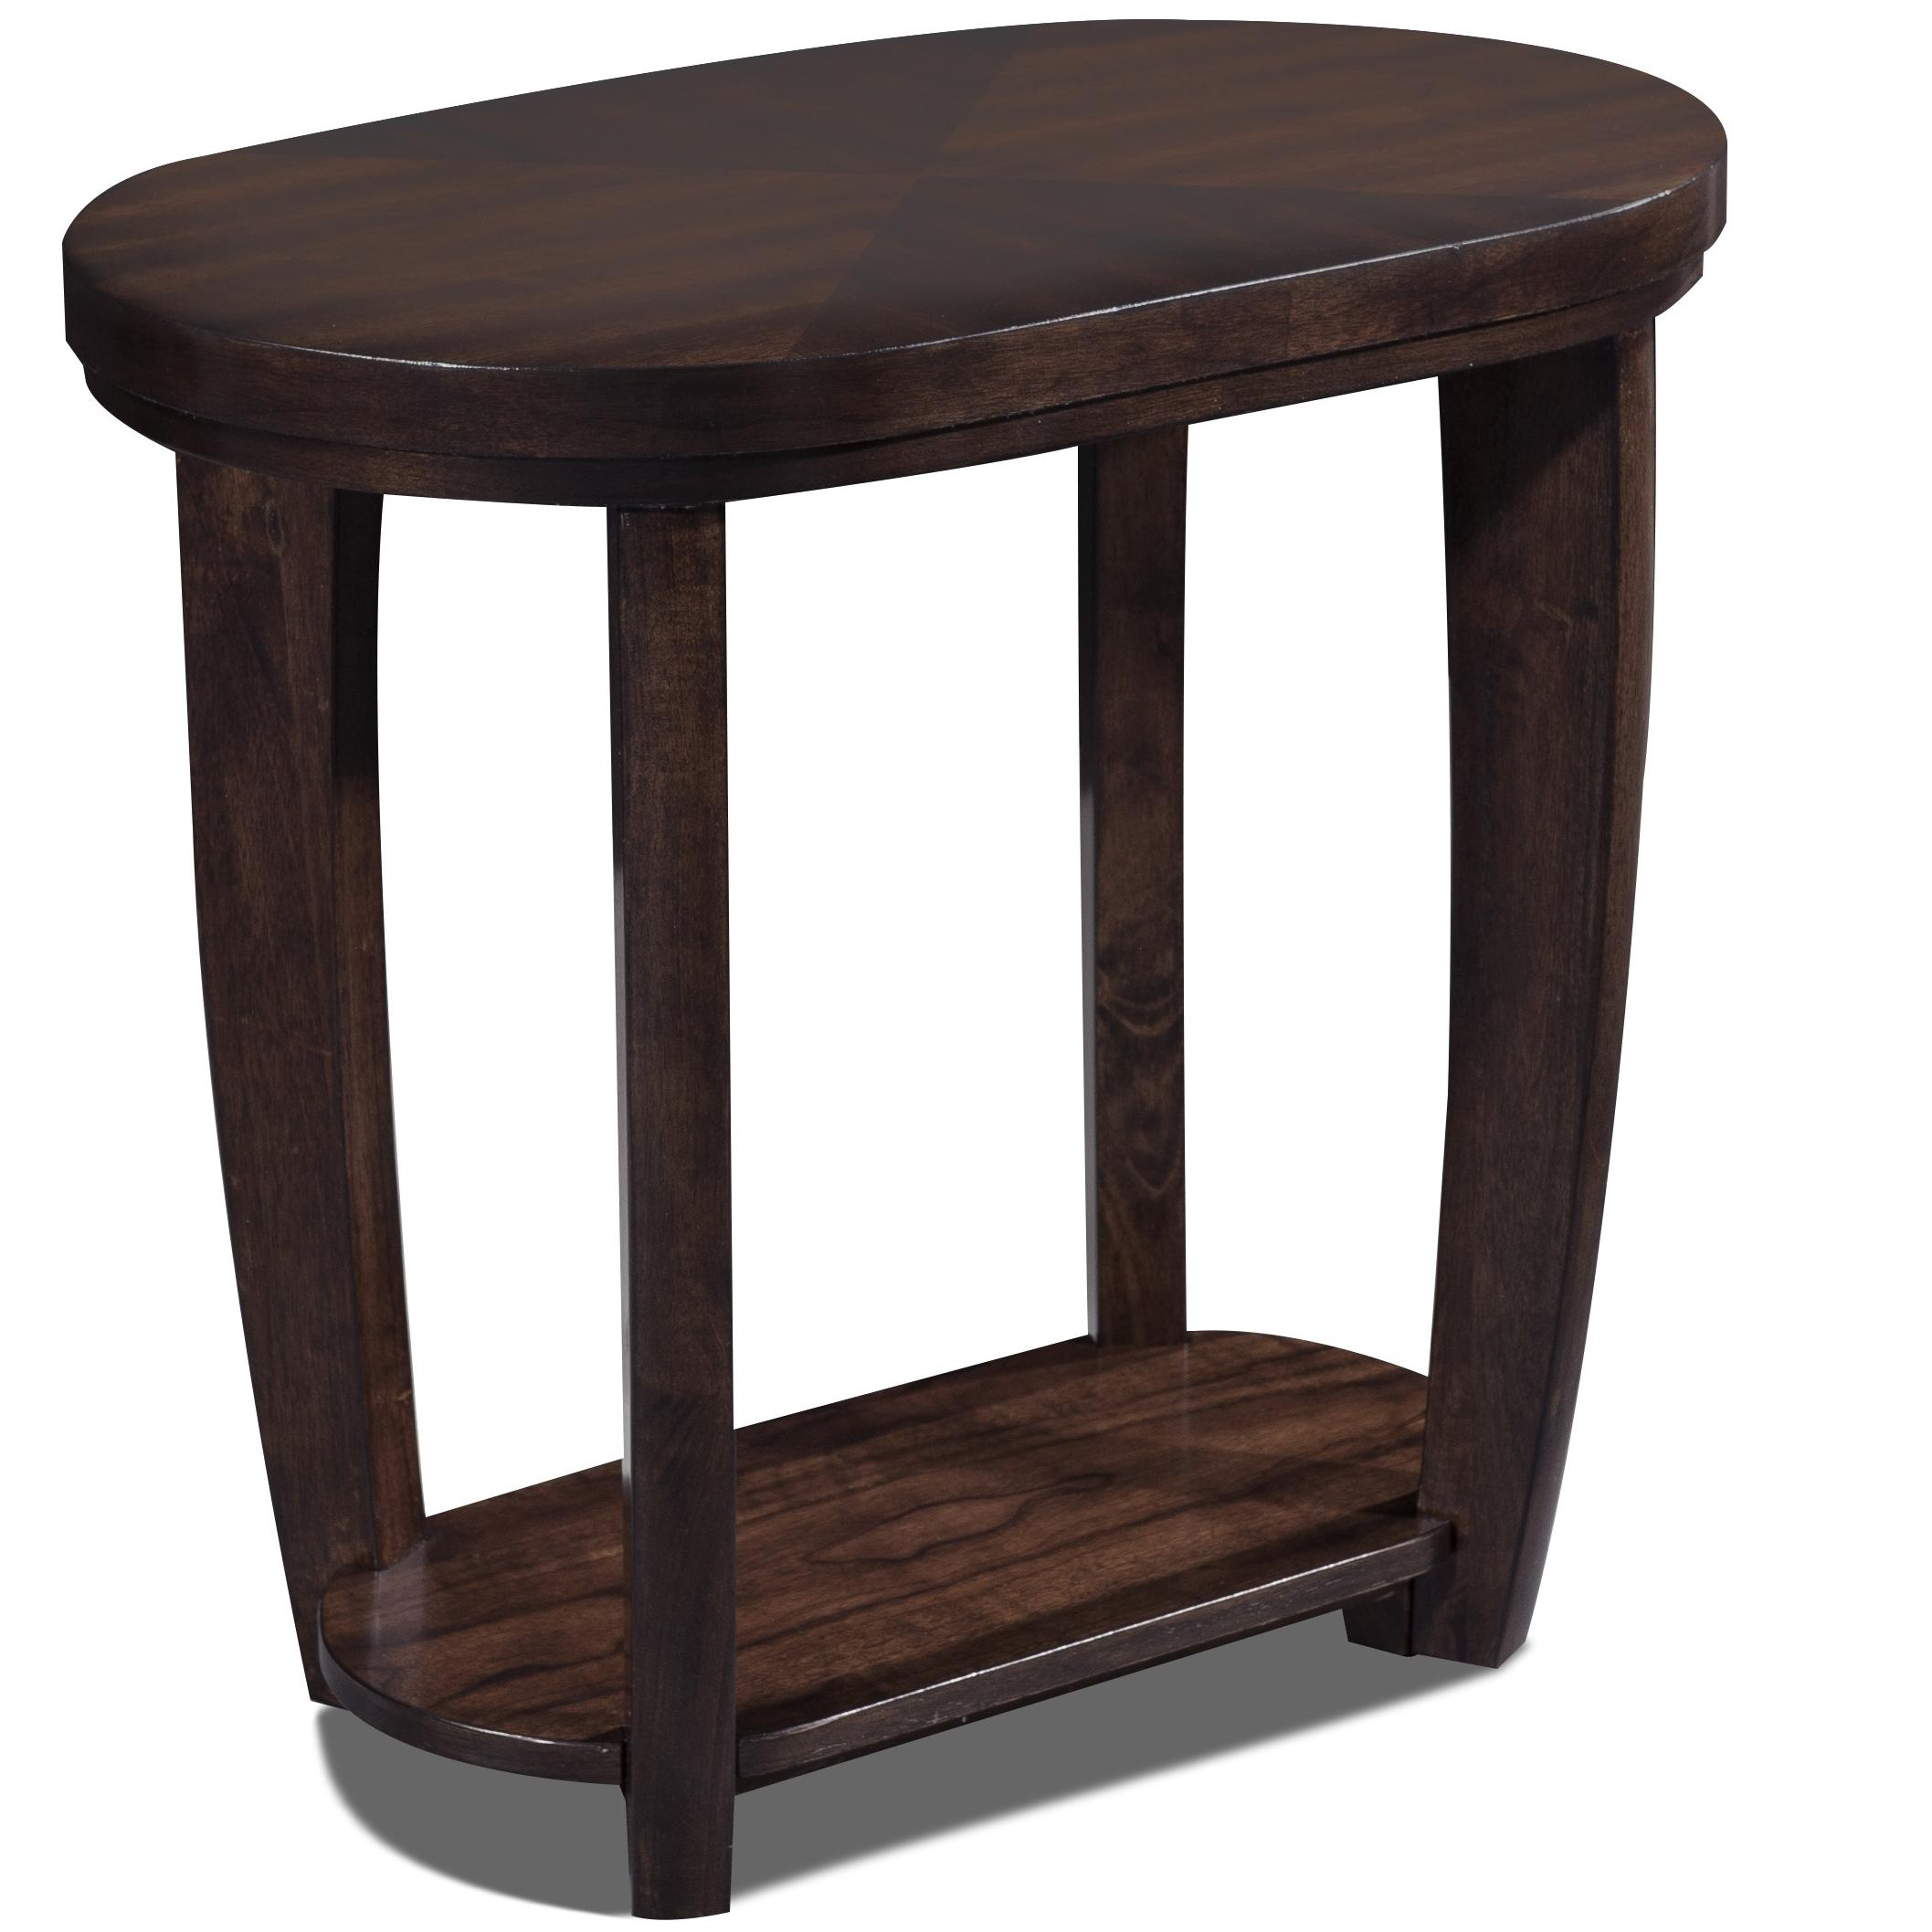 Hayden oval chairside table with 1 shelf morris home end table Morris home furniture outlet